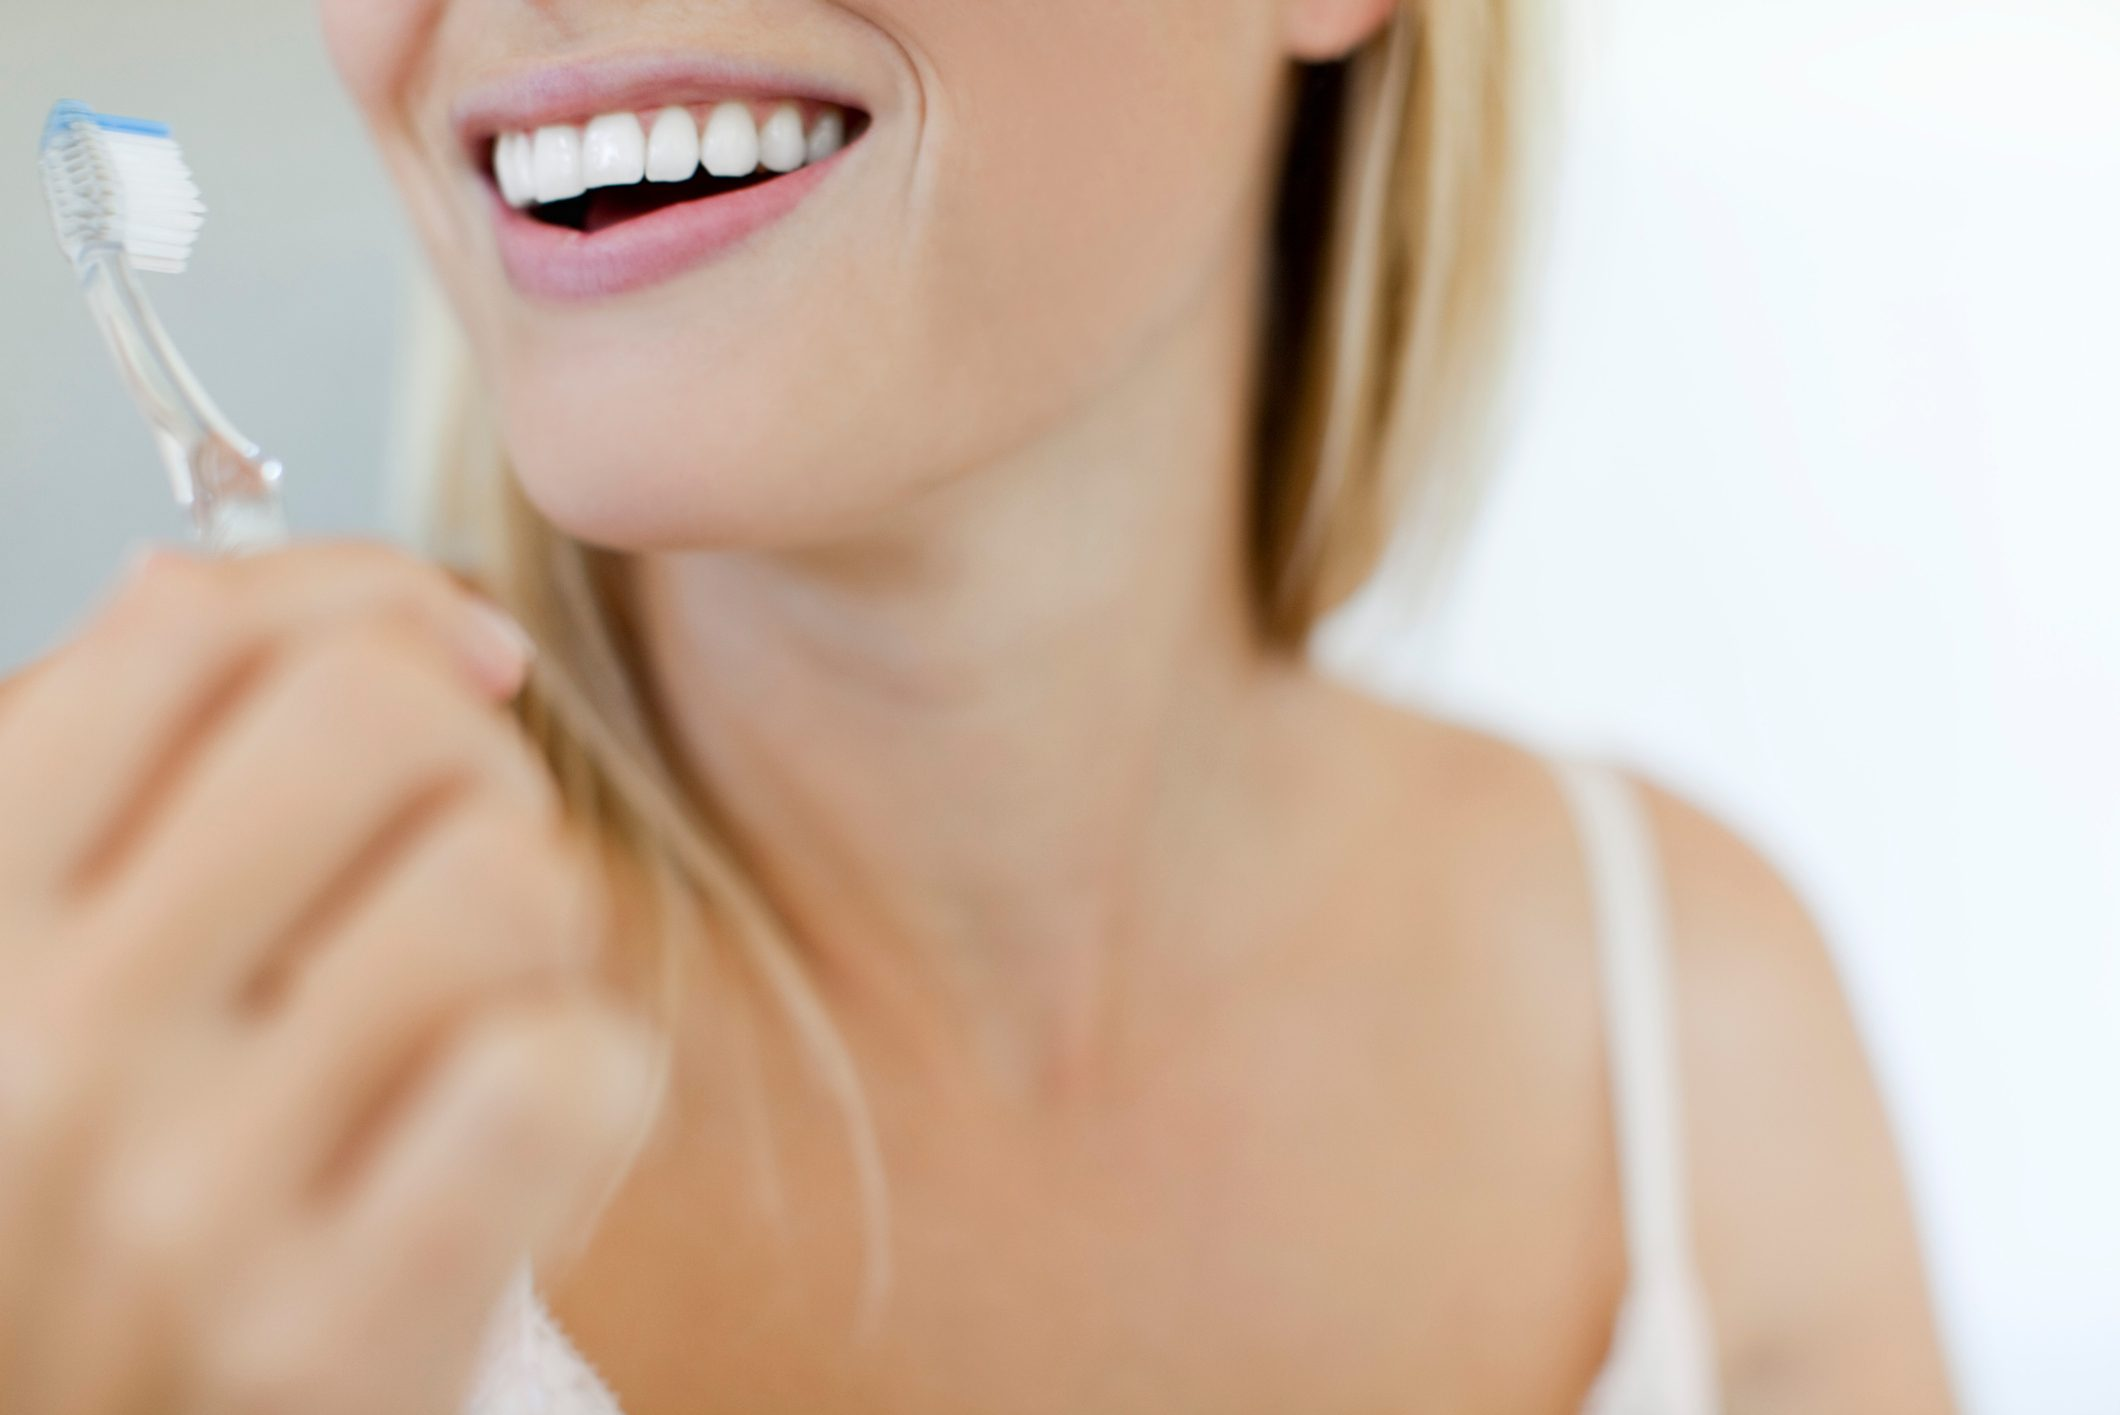 cropped shot of woman brushing teeth